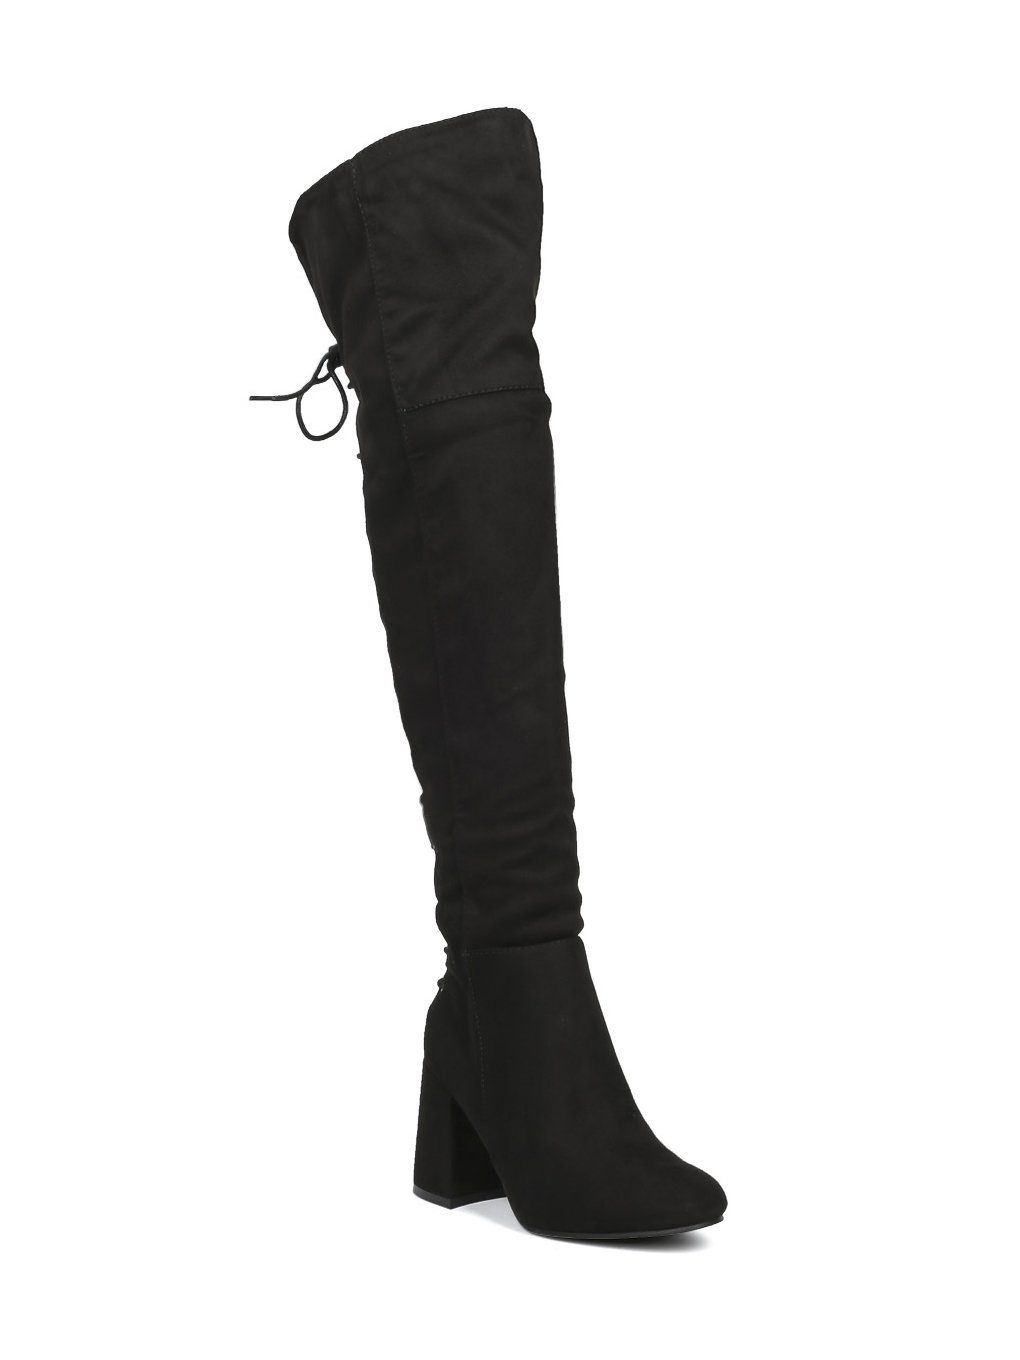 Indulge Bella-I Women Faux Suede Over The Knee Hind Lace Up Block Heel Boot HE65 - Black Faux Suede (Size: 11)